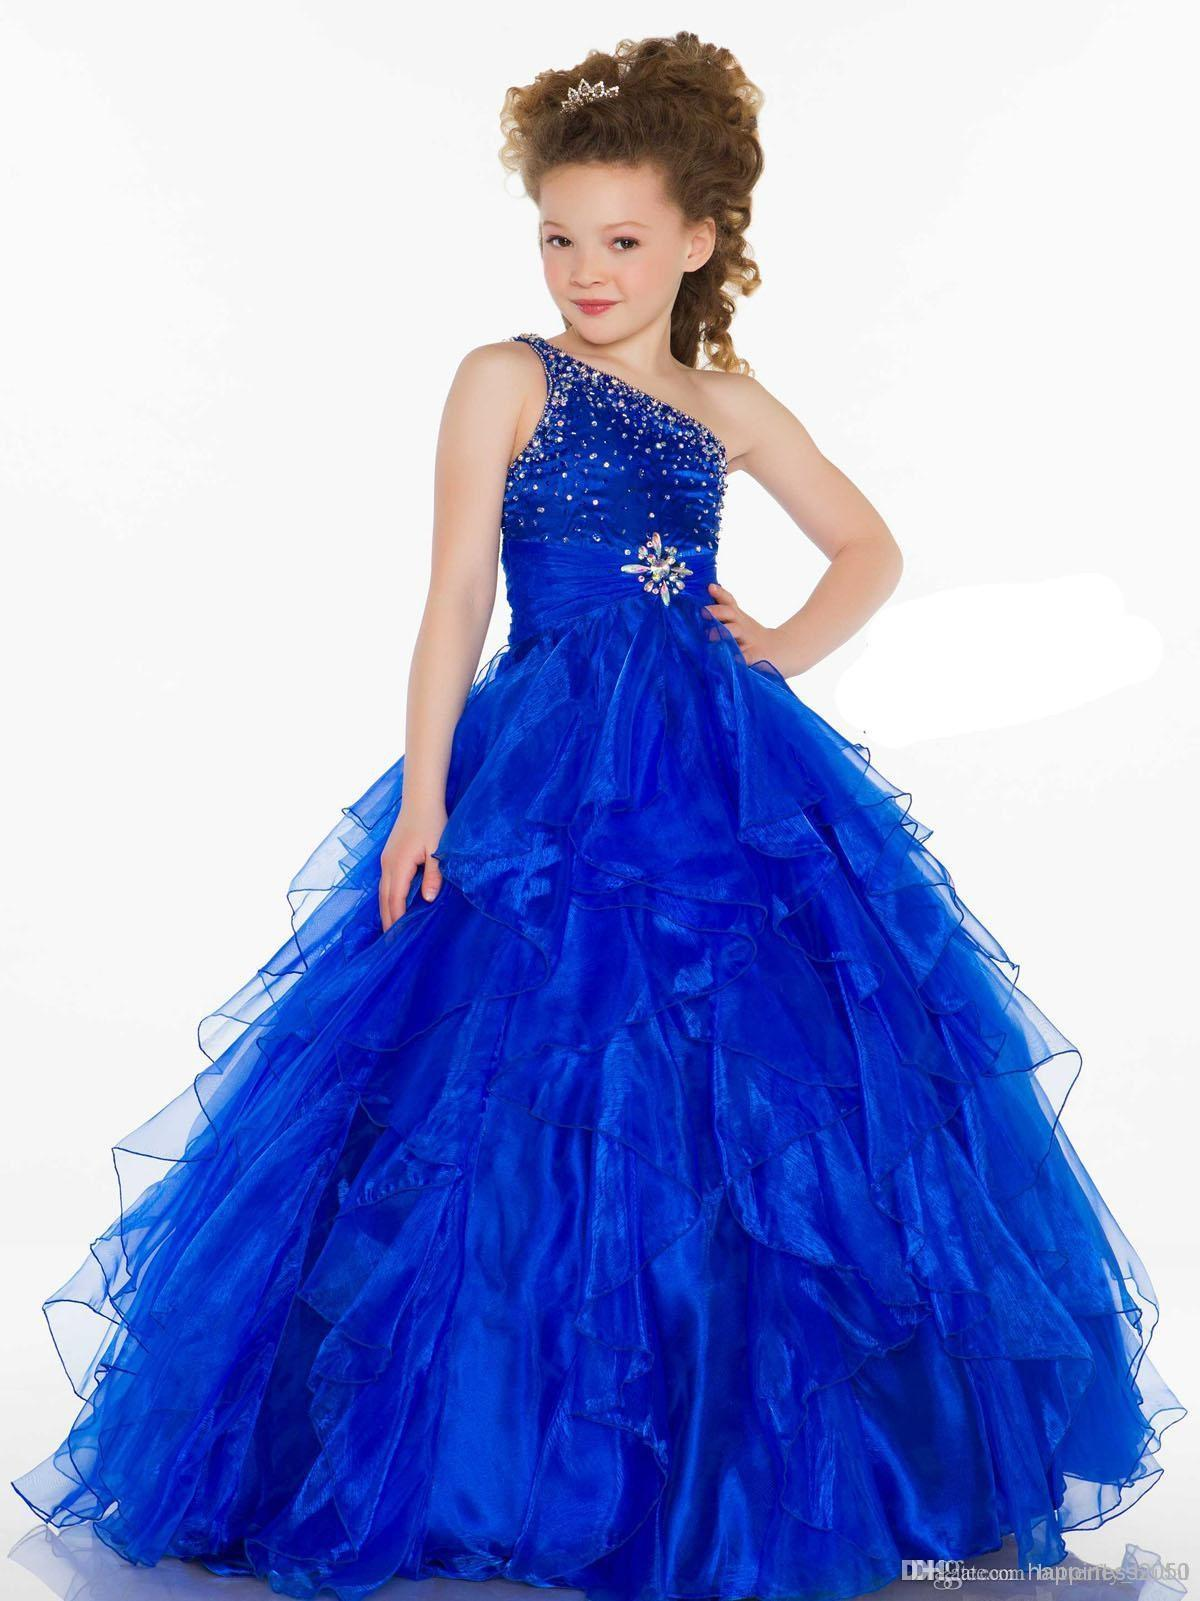 Royal Blue One shoulder Spaghetti strap Floor length Sequin Beaded Tiered Organza Sash Cute Baby Girls dress Girl's Birthday Party Dress